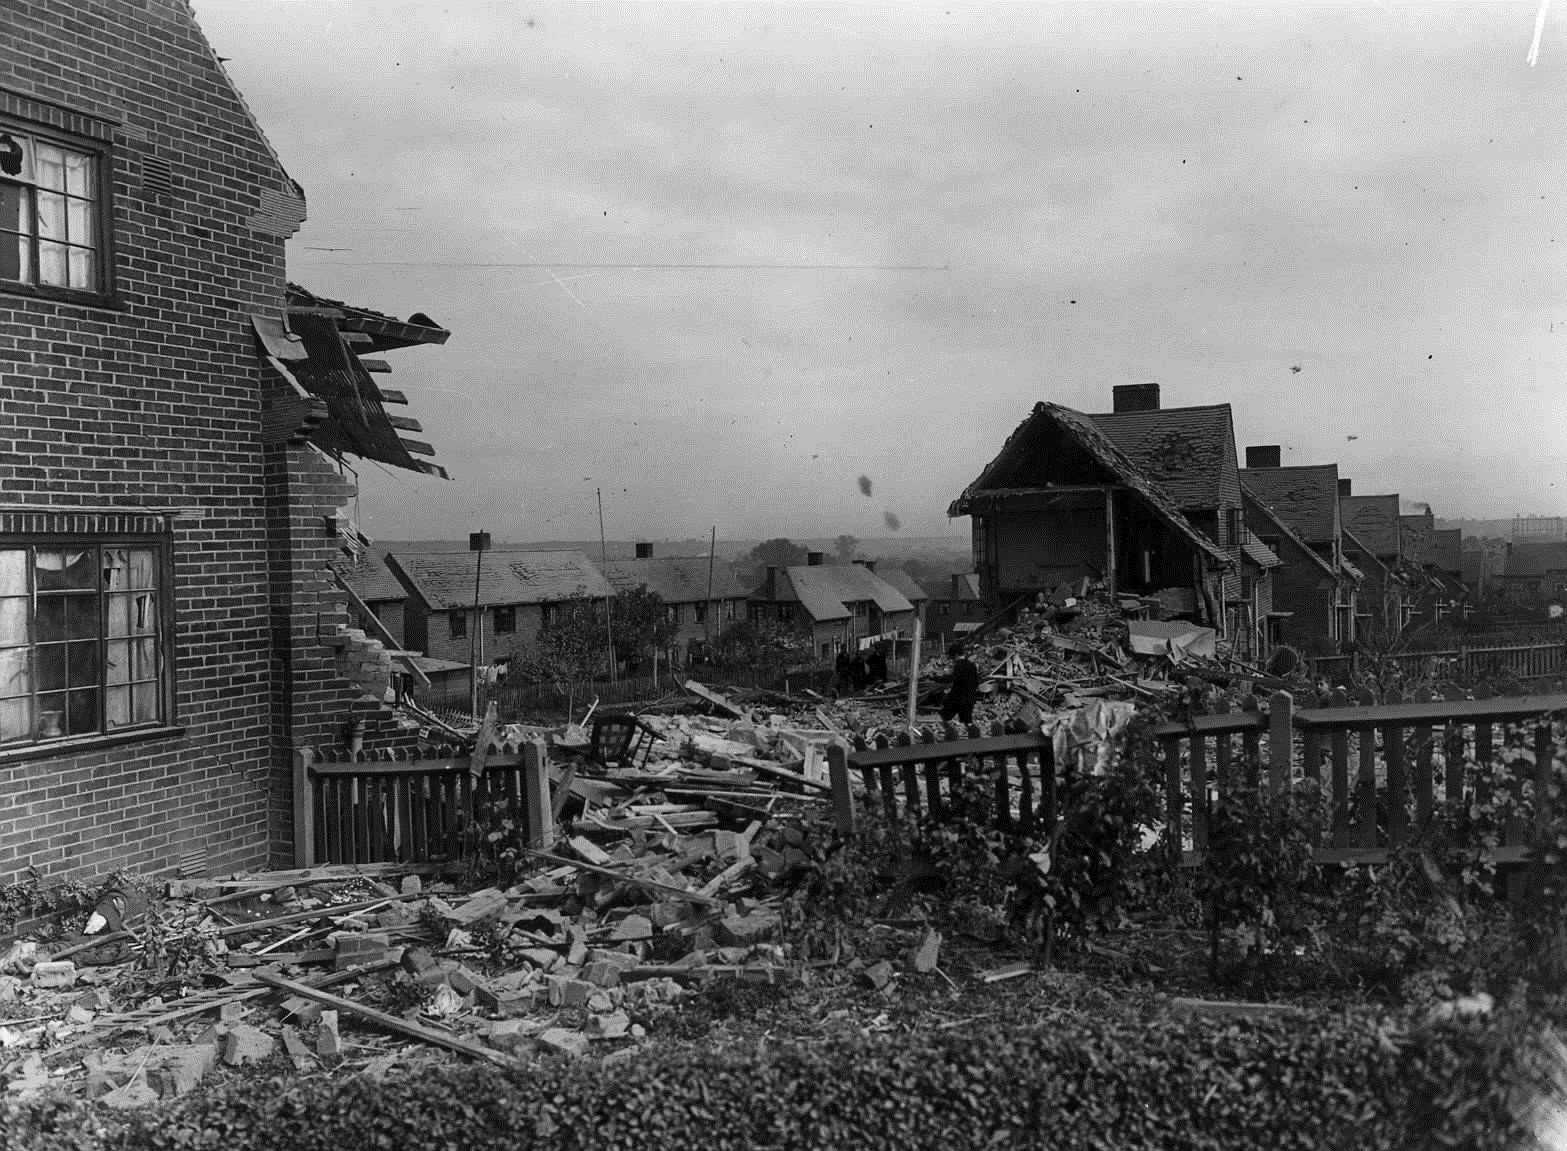 Houses on the Thanington estate were also destroyed